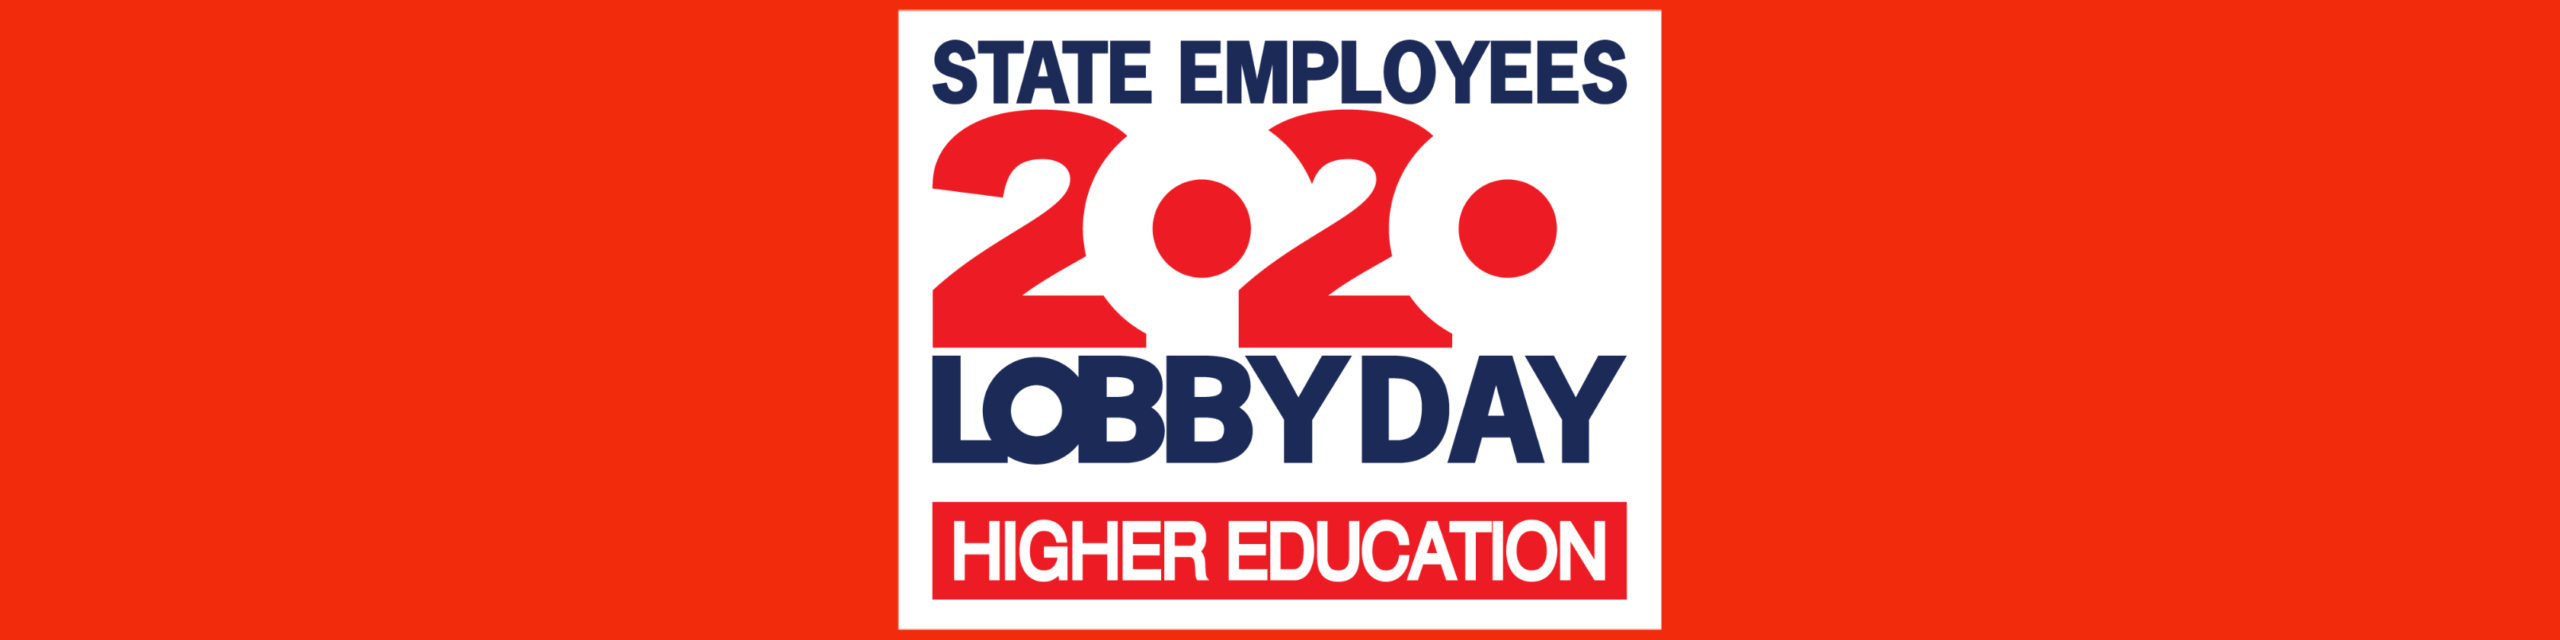 TSEA Higher Education Lobby Day canceled